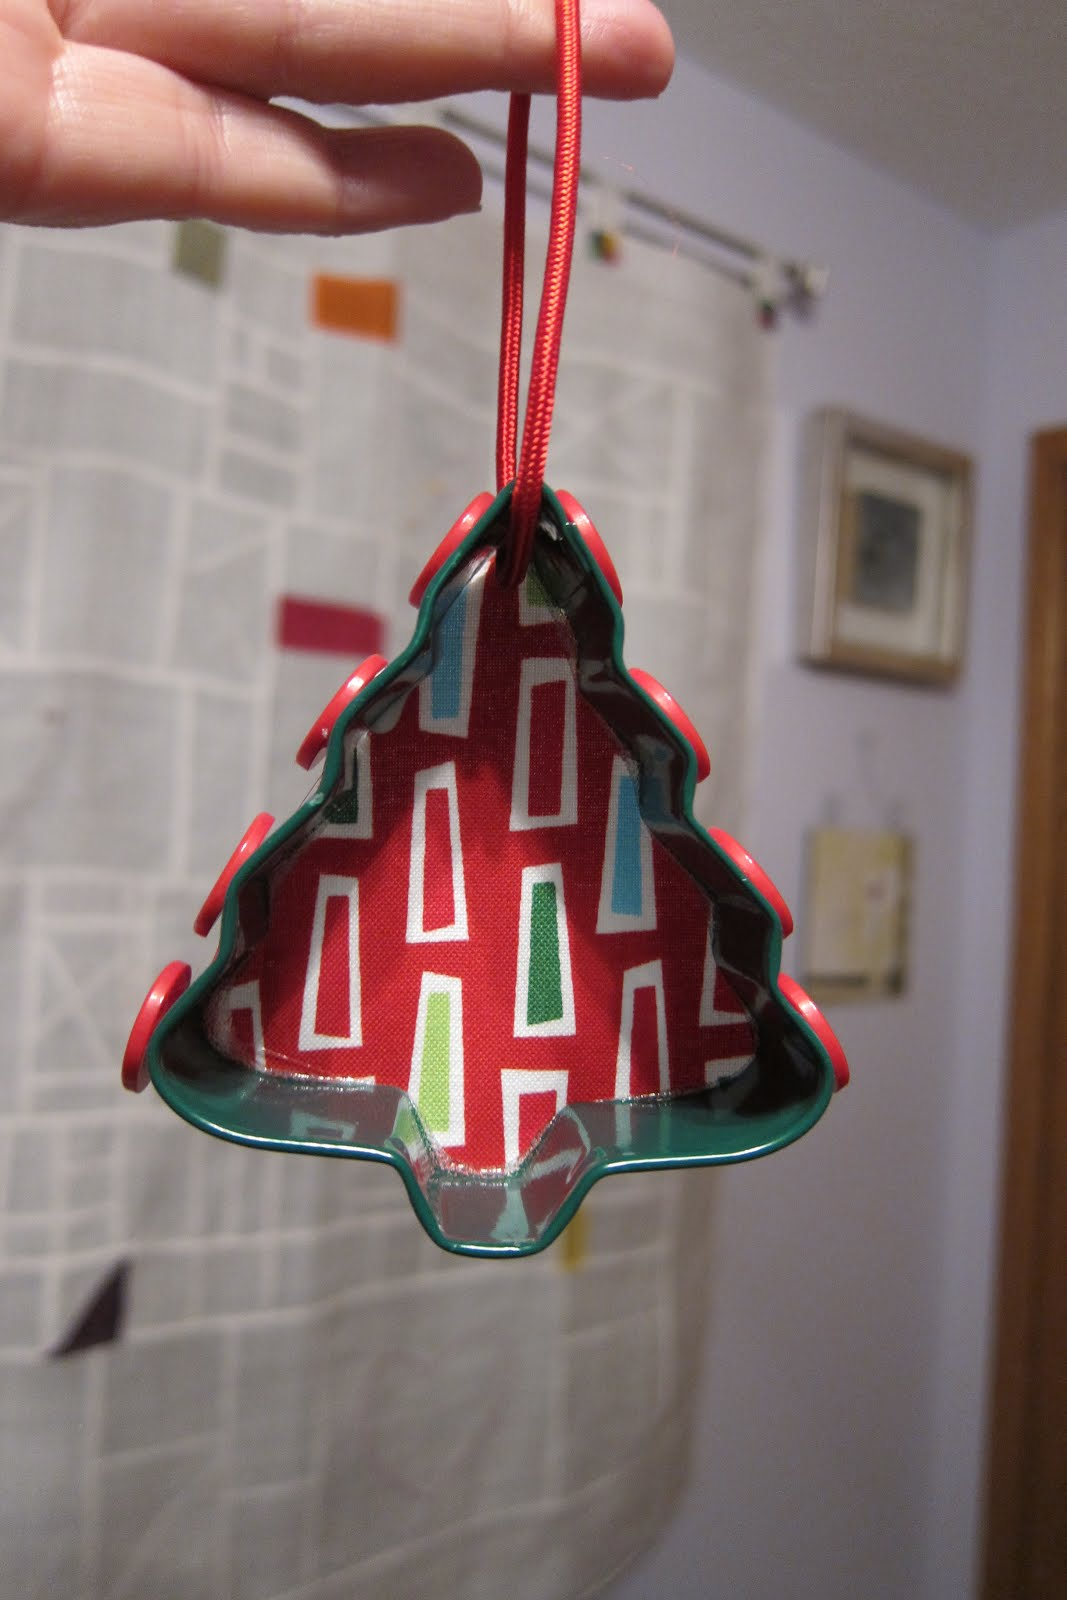 The constant crafter cookie cutter ornament project